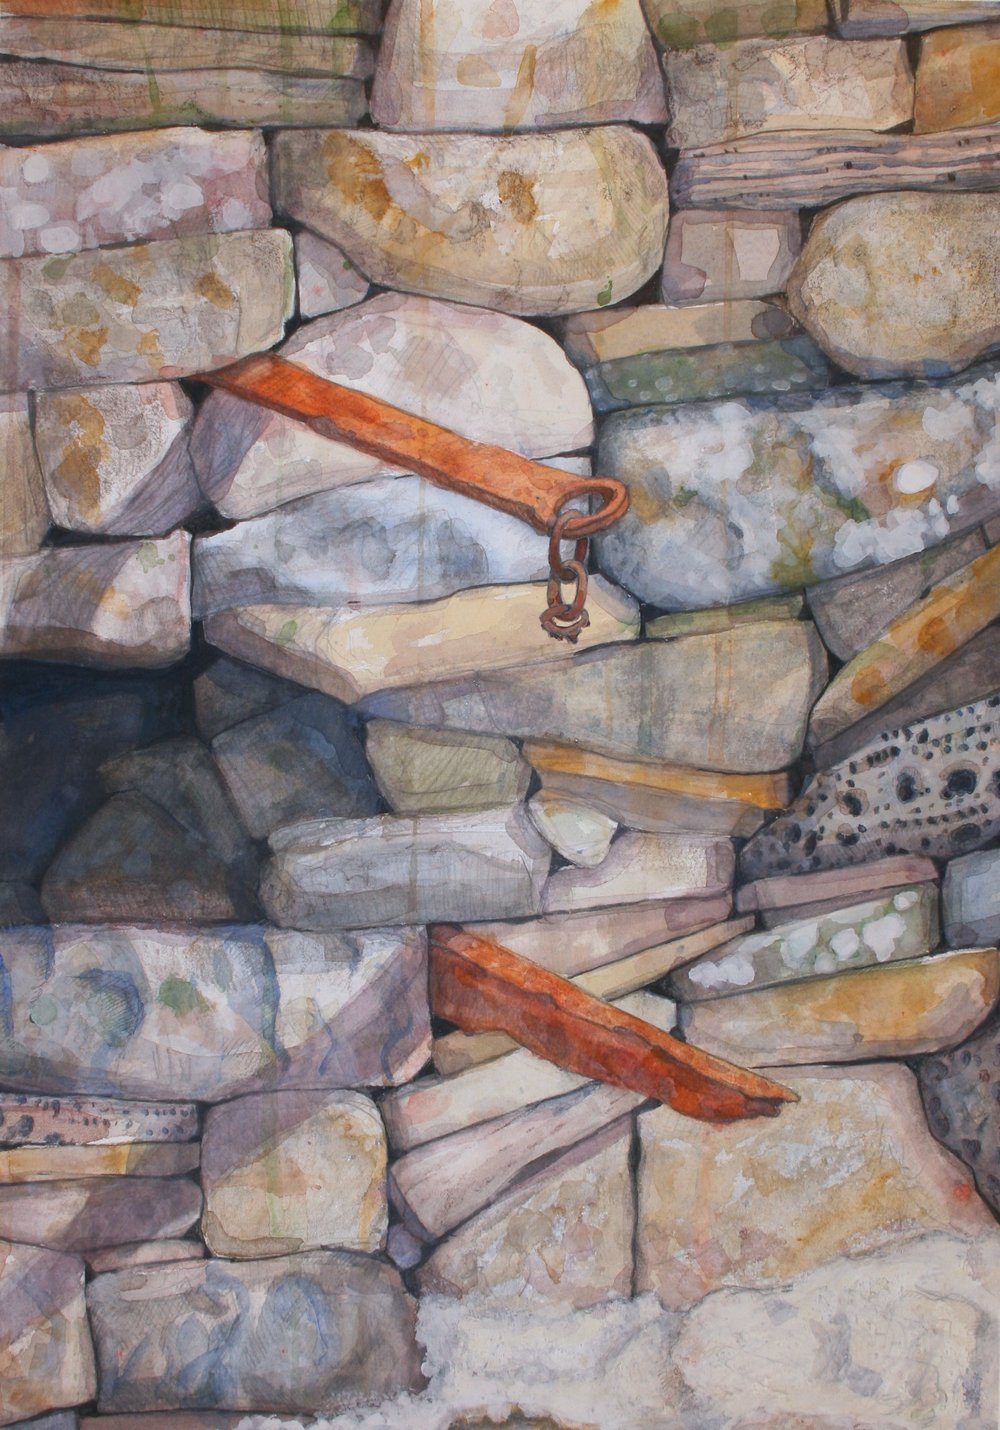 "Stone Wall With Rusted Iron   Watercolor, gouache, charcoal, 20x14"", 2013"